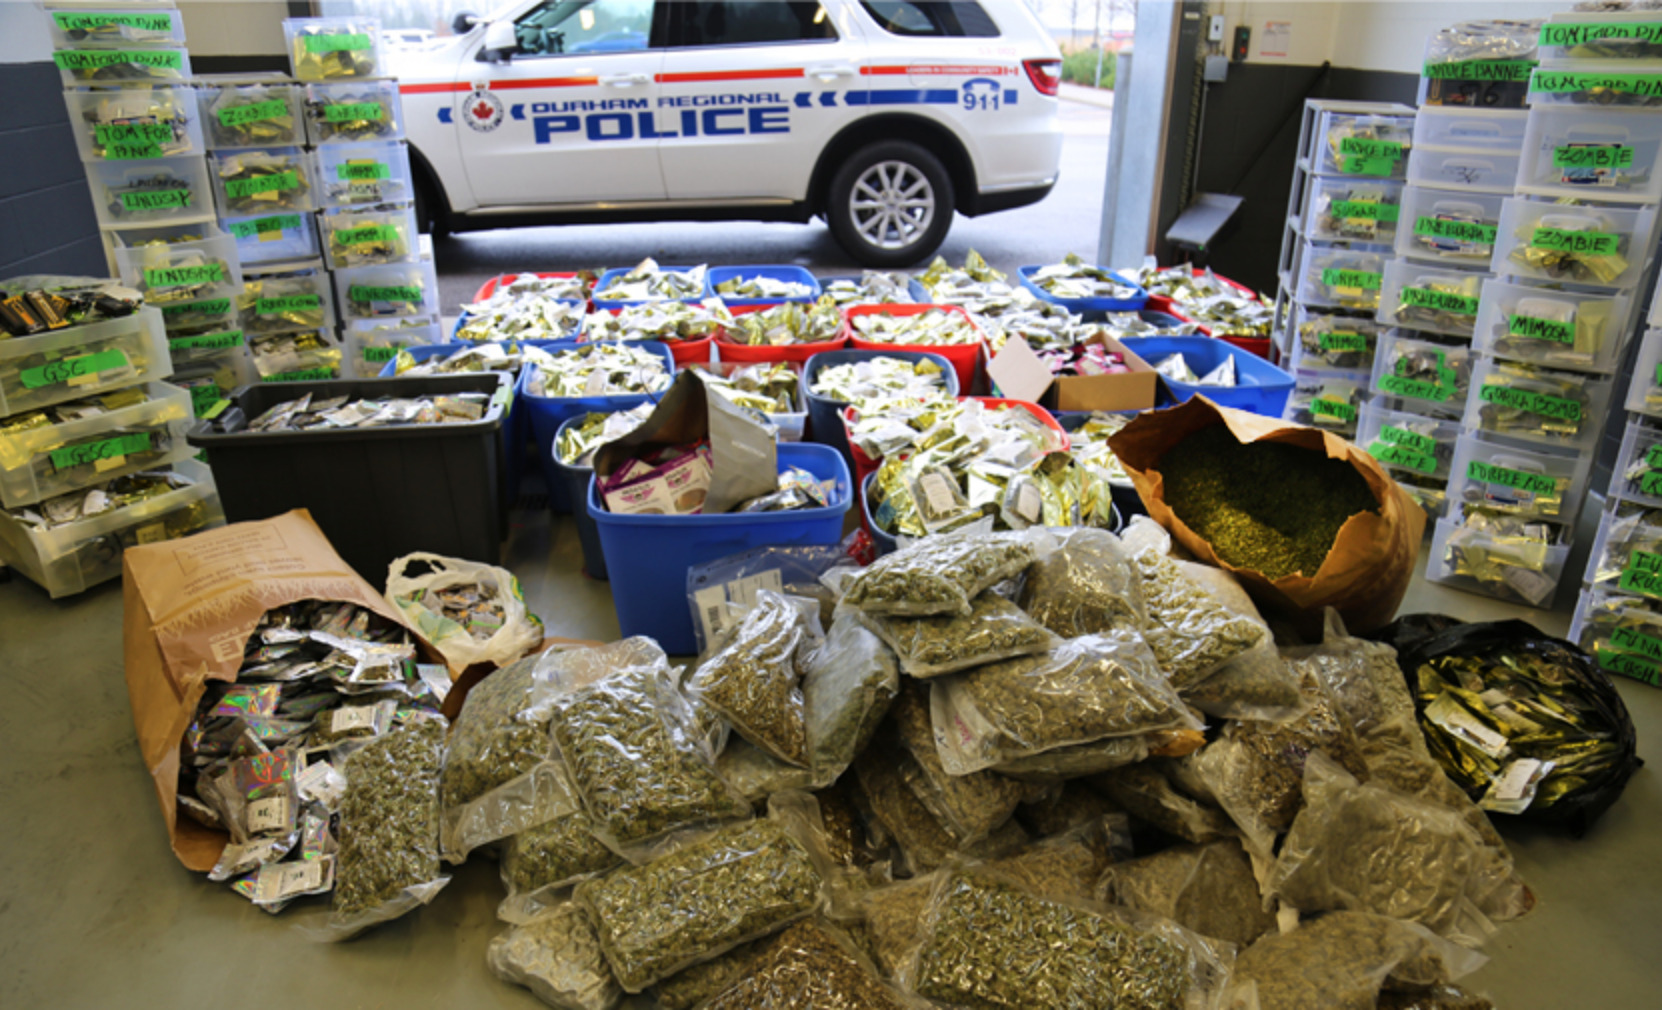 Police in Durham, Ontario seize more than $2 million in illicit cannabis and cash